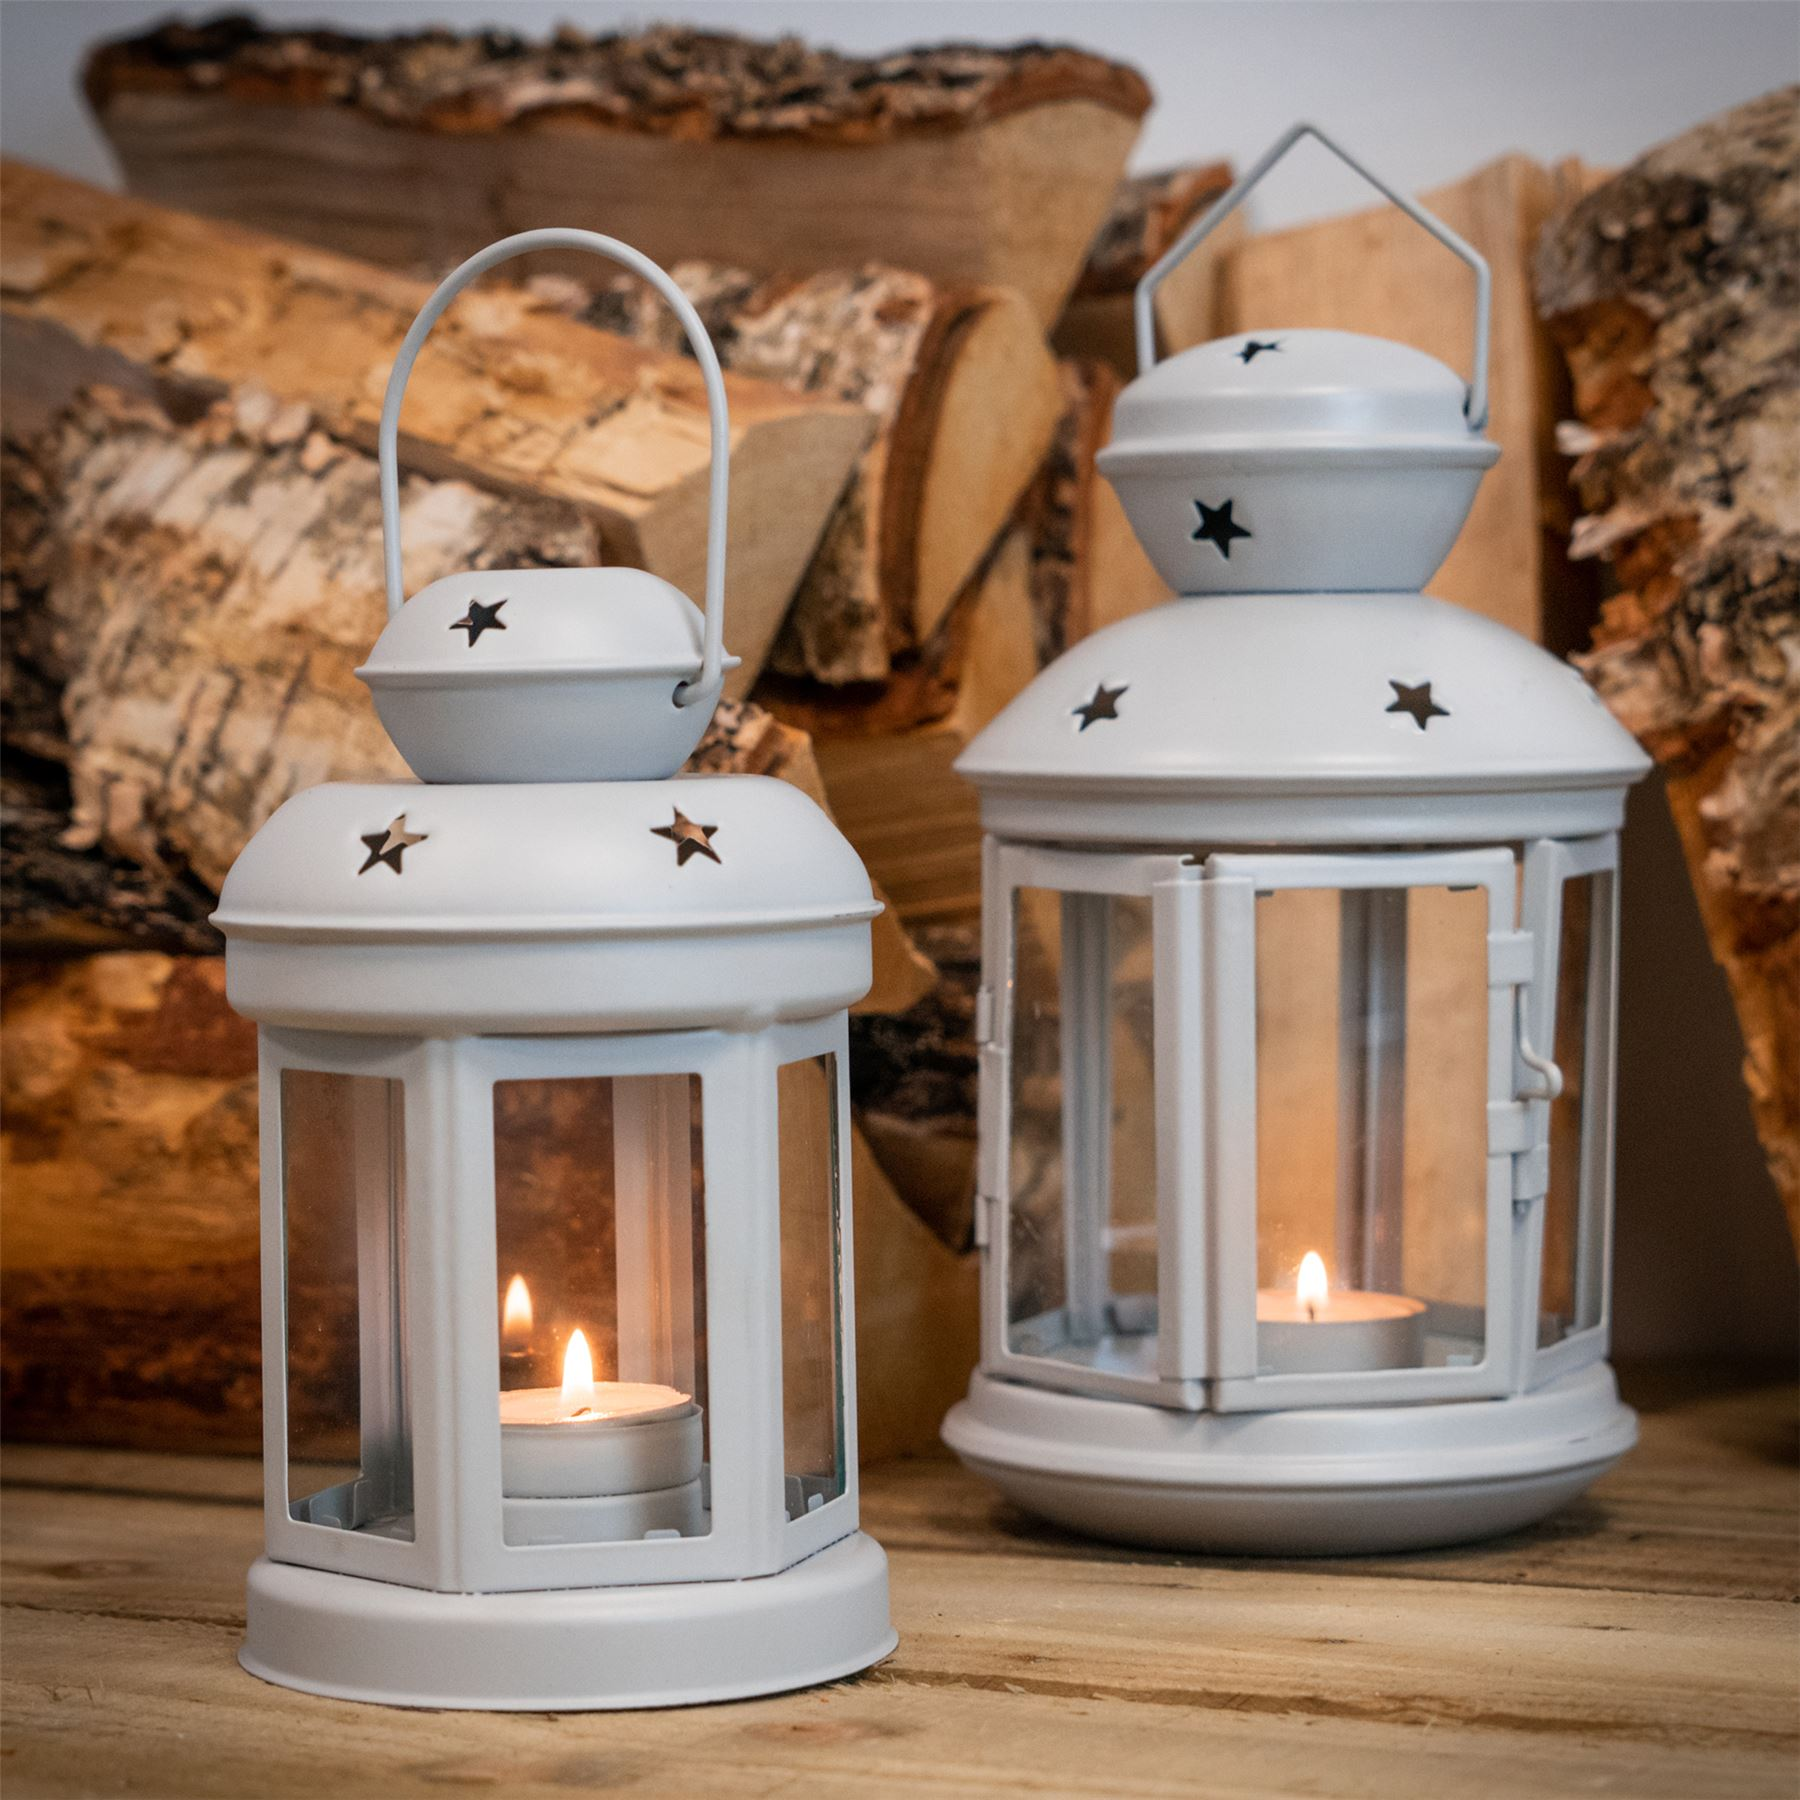 Metal-Candle-Lanterns-Tealight-Holders-Vintage-French-Moroccan-Style-20cm-x2 thumbnail 19